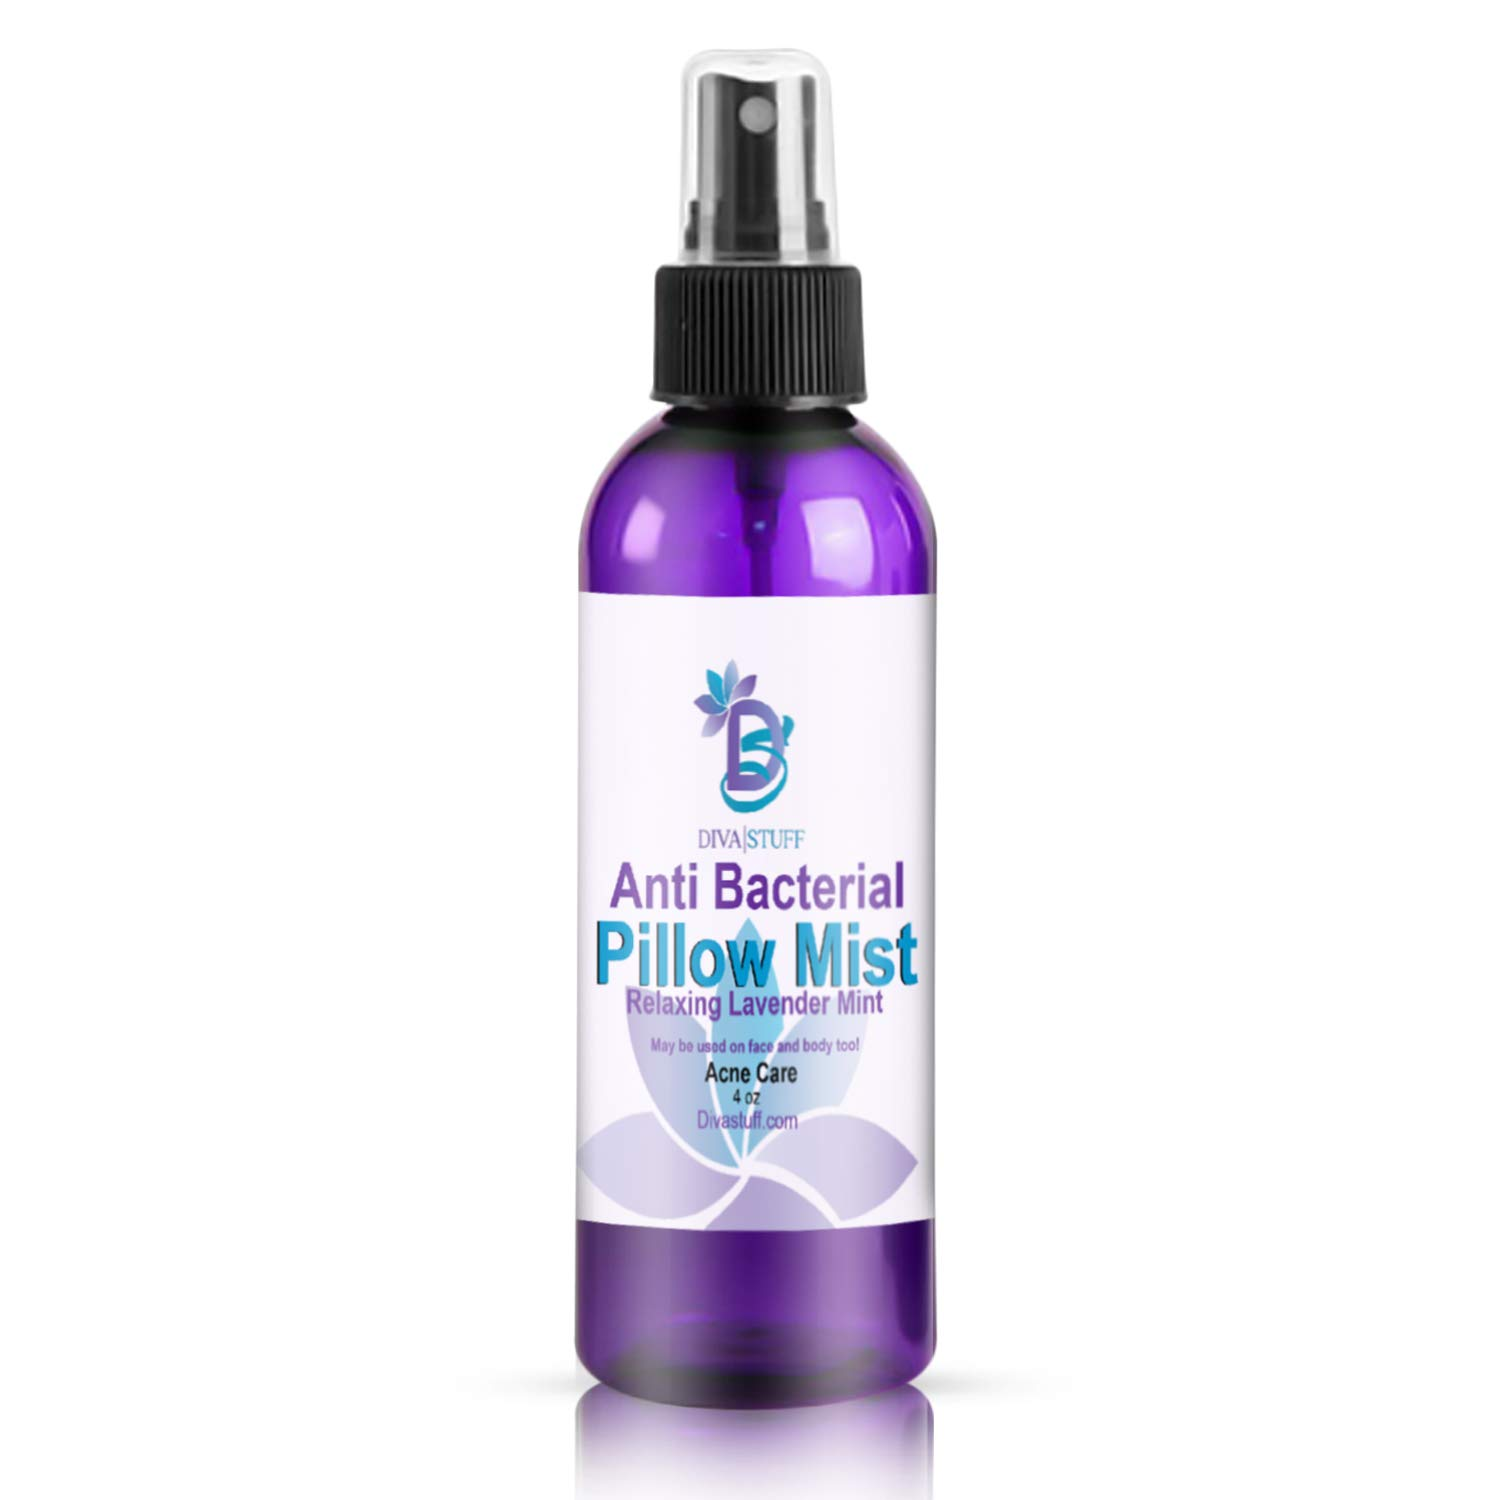 Diva Stuff Anti-Bacterial Pillow Mist, Promotes Clear Skin & Kills Acne-Causing Bacteria, Cleans Pillows, Pillowcases, Beddings, Sheets, Made in USA, Safe Ingredients, 4 fl oz